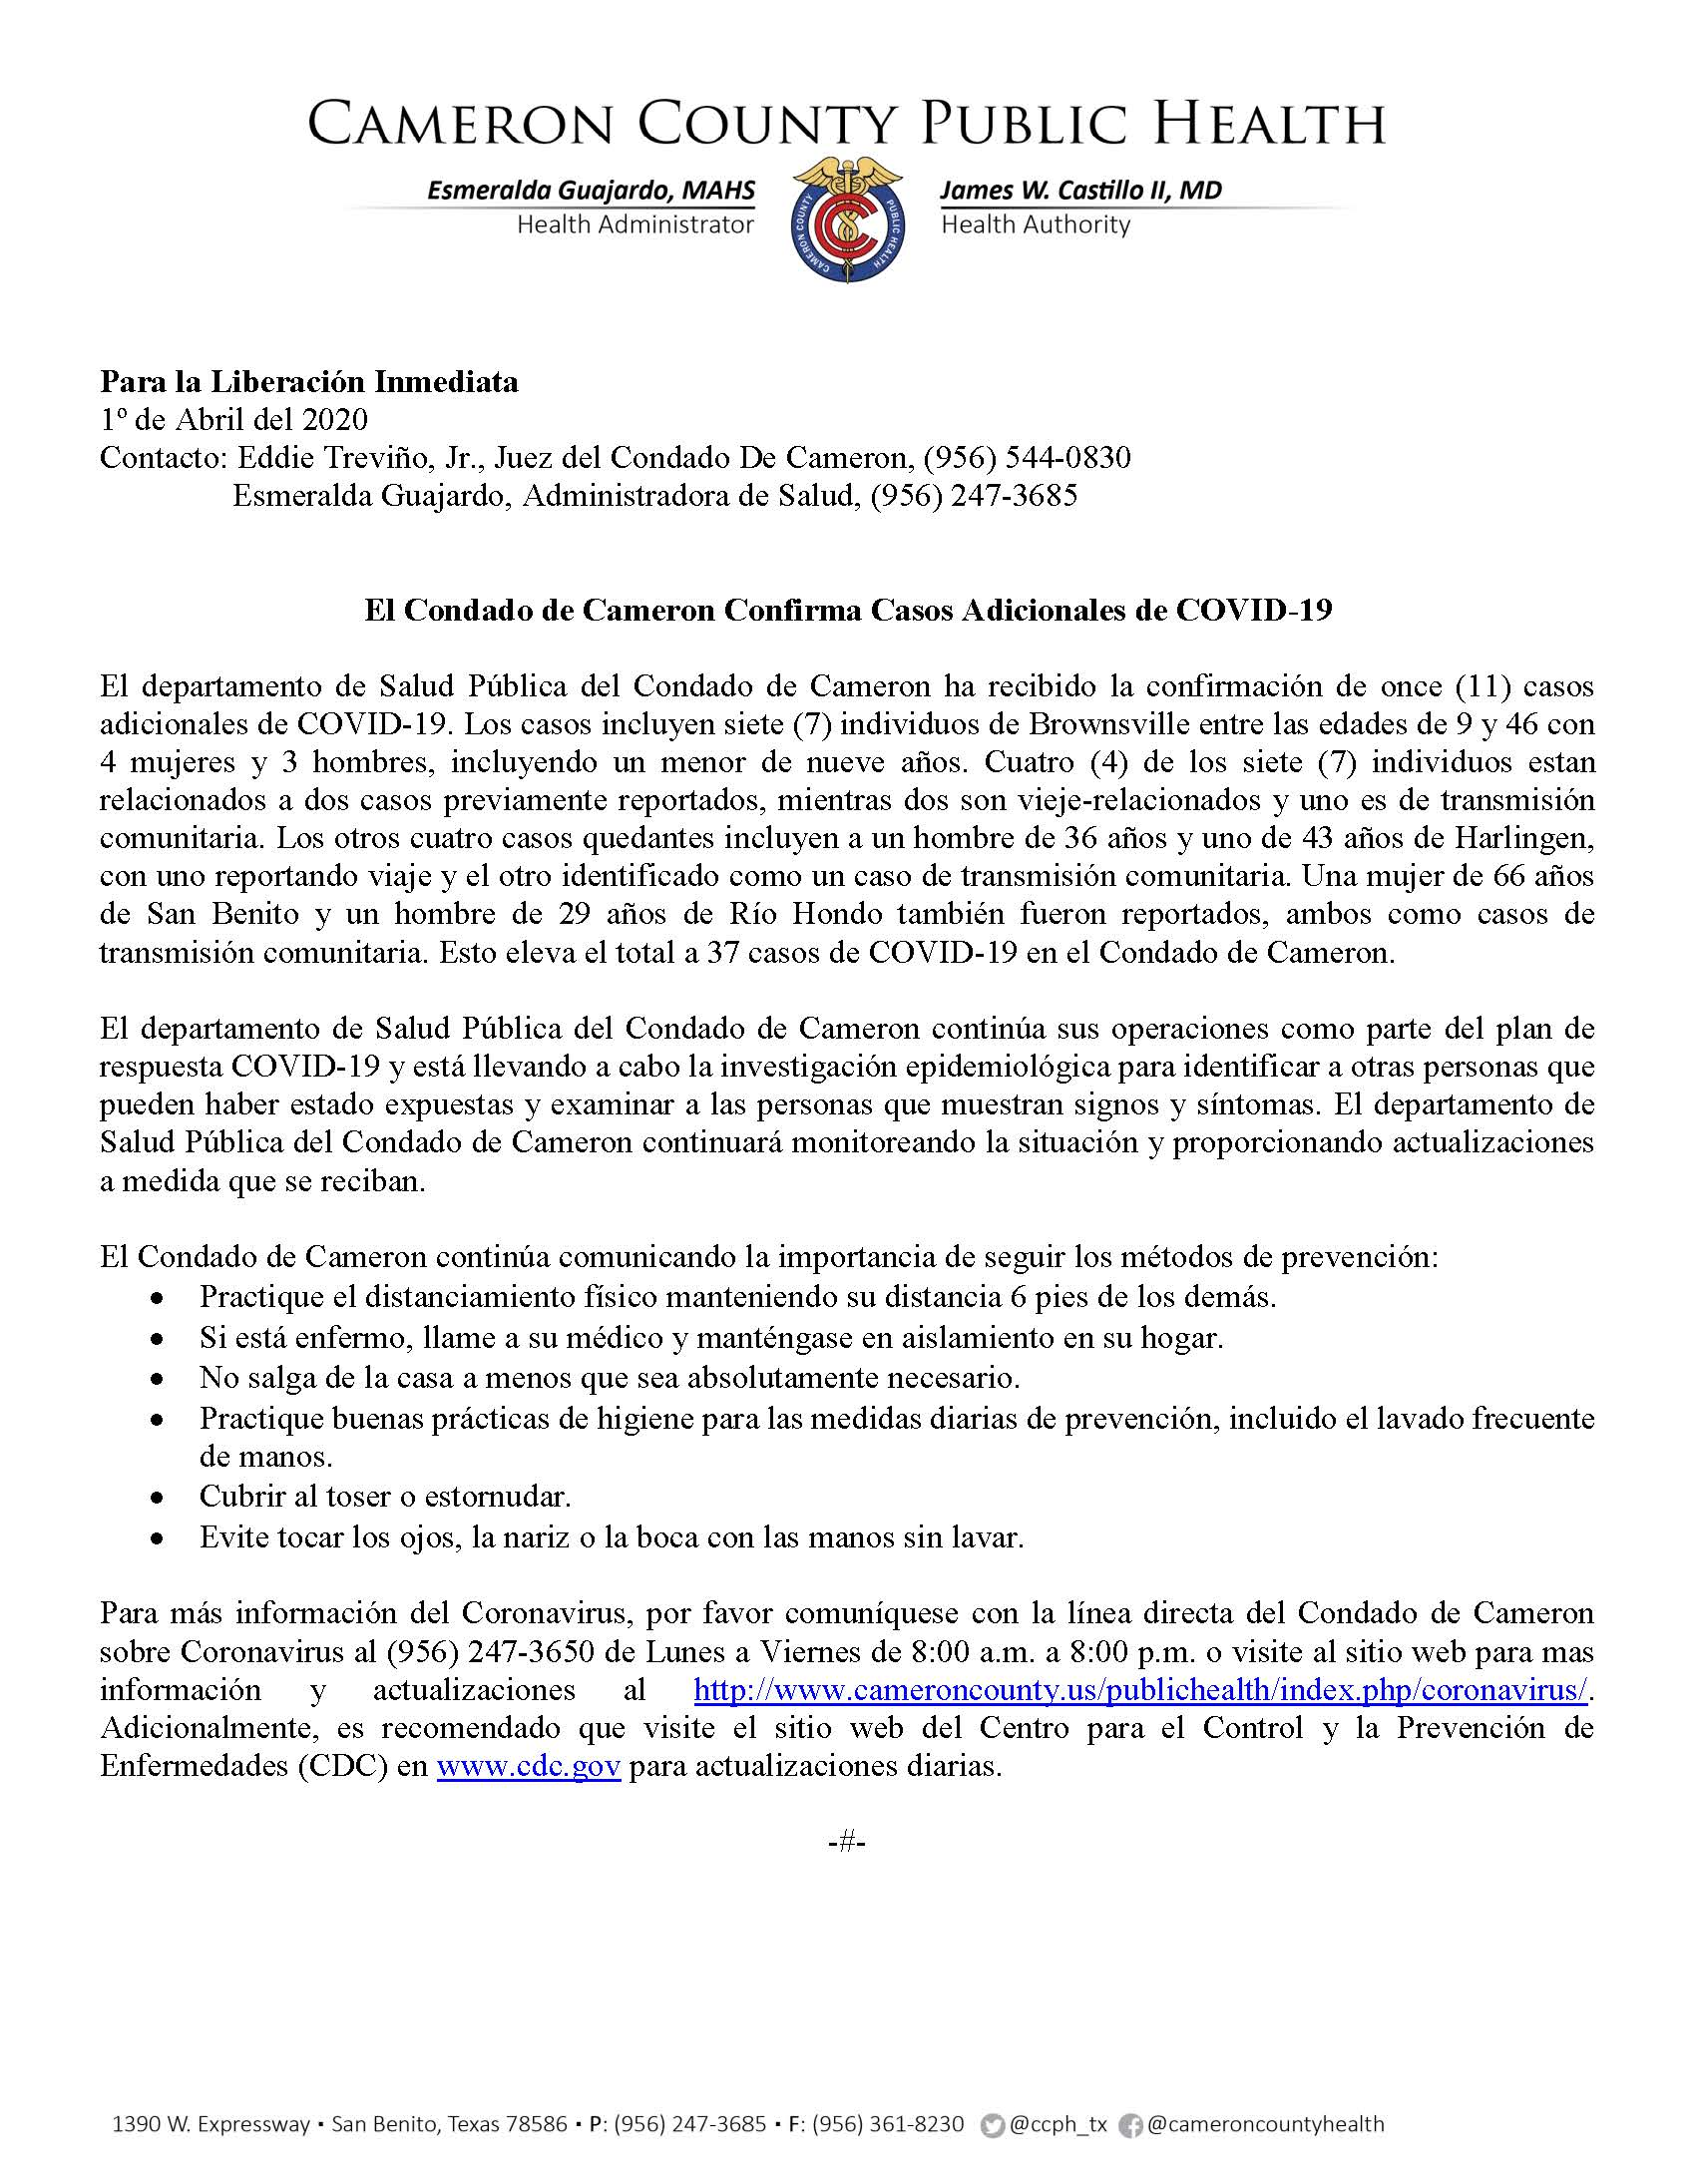 04.01.2020 COVID19 Press Release in Spanish